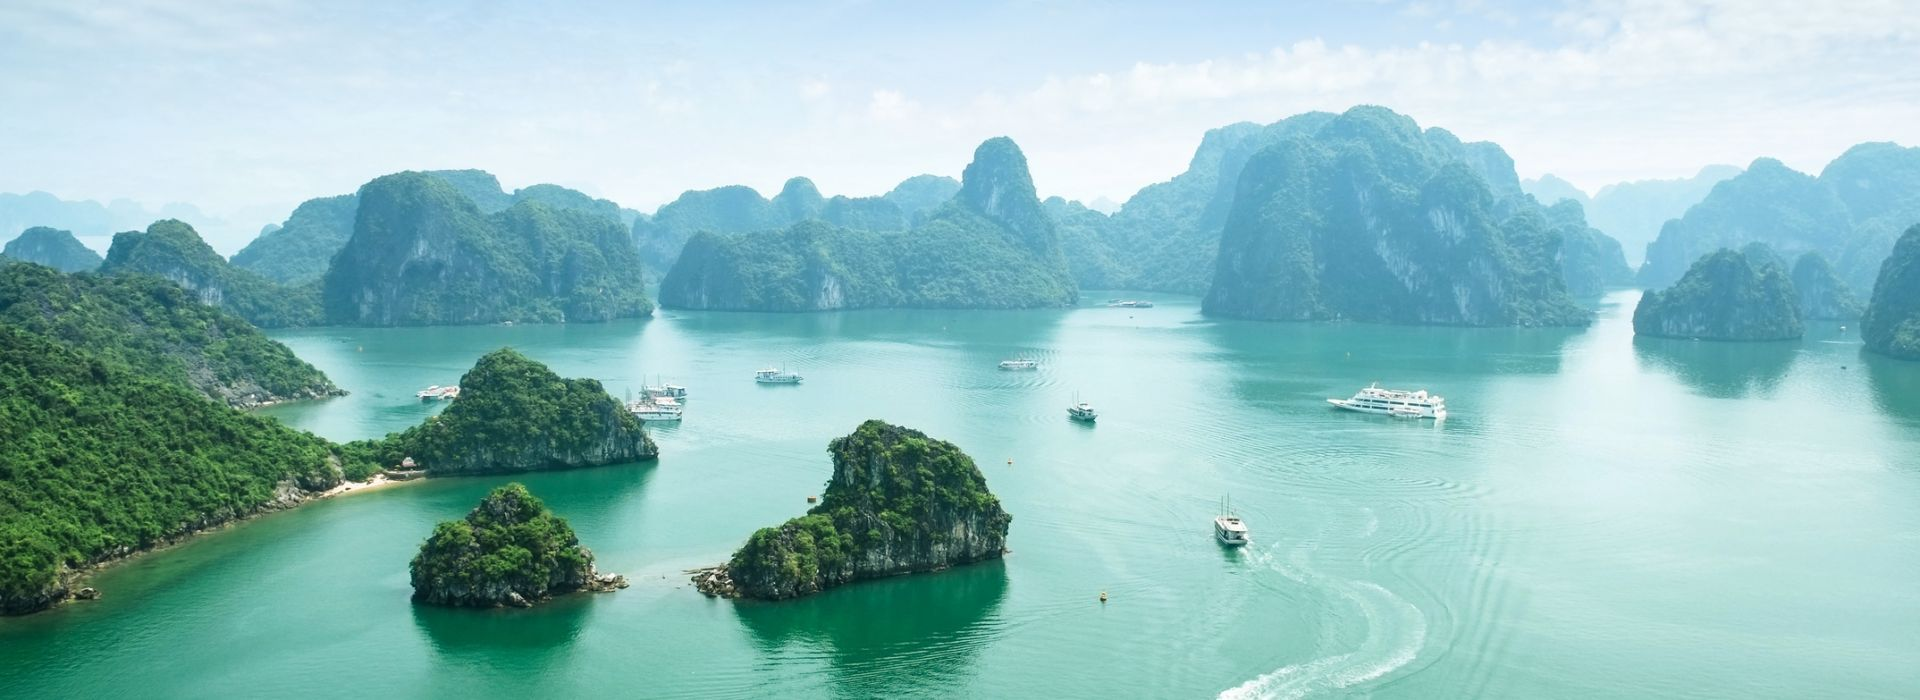 Cultural, religious and historic sites Tours in Ha Long Bay